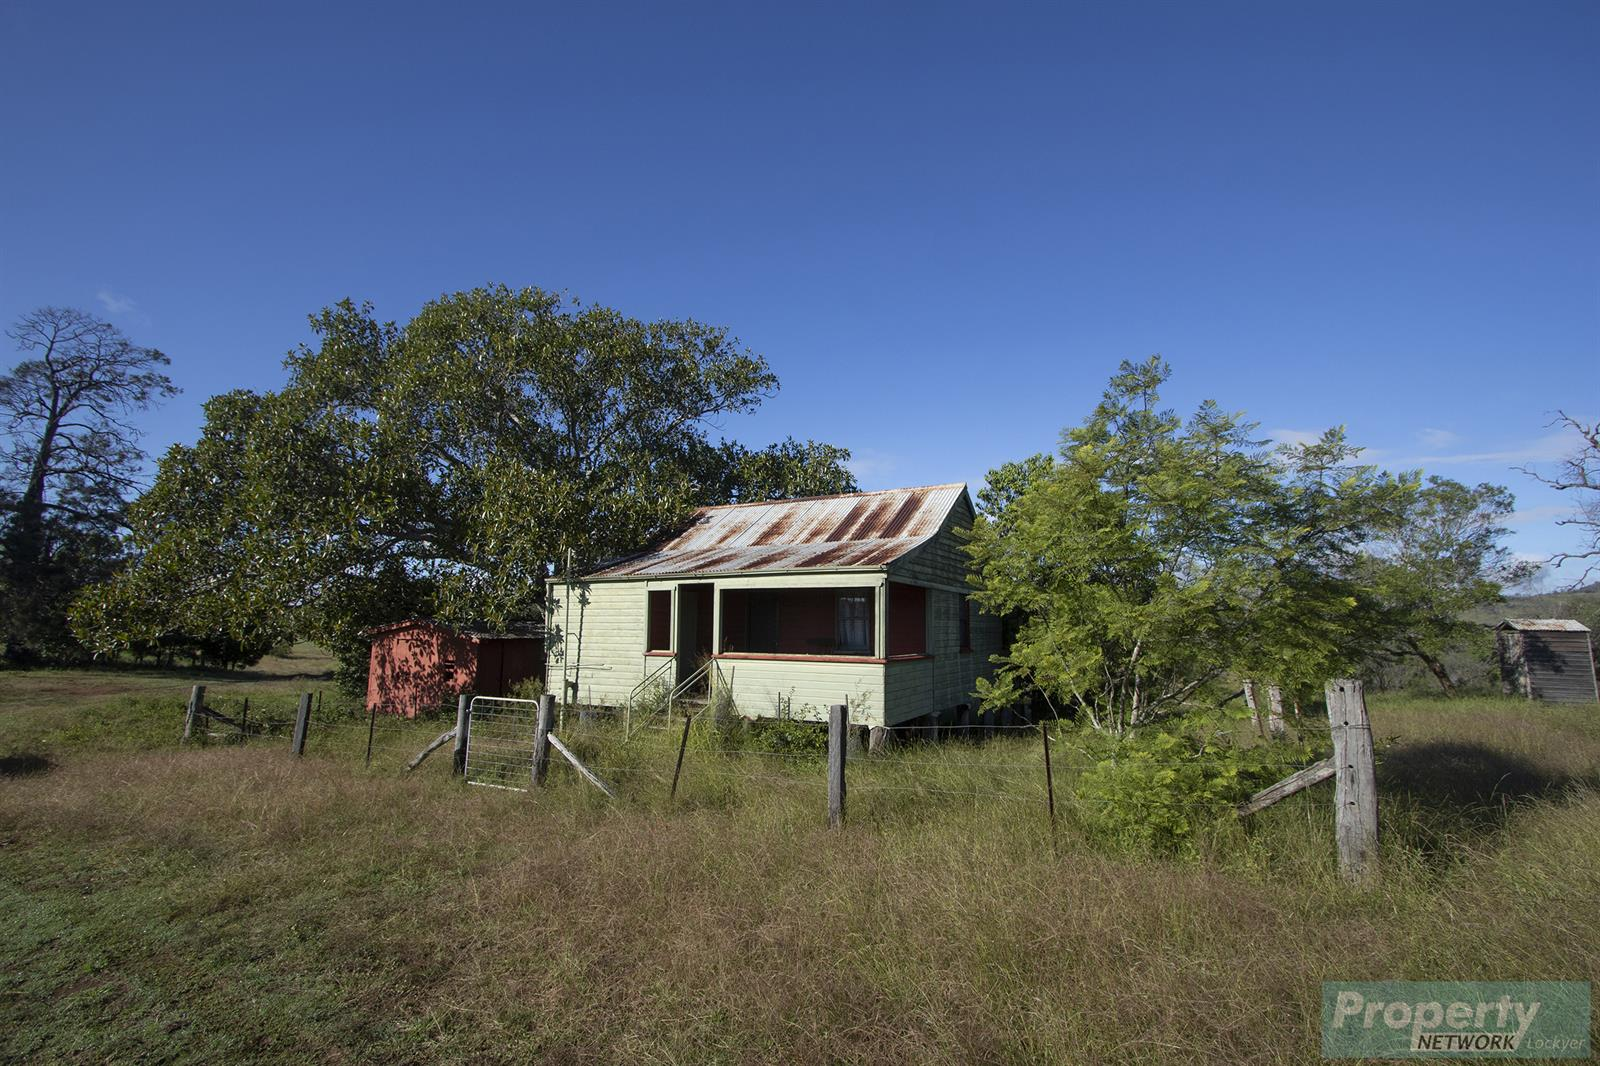 FORDSDALE QLD 4343 (address available on request) Image 17